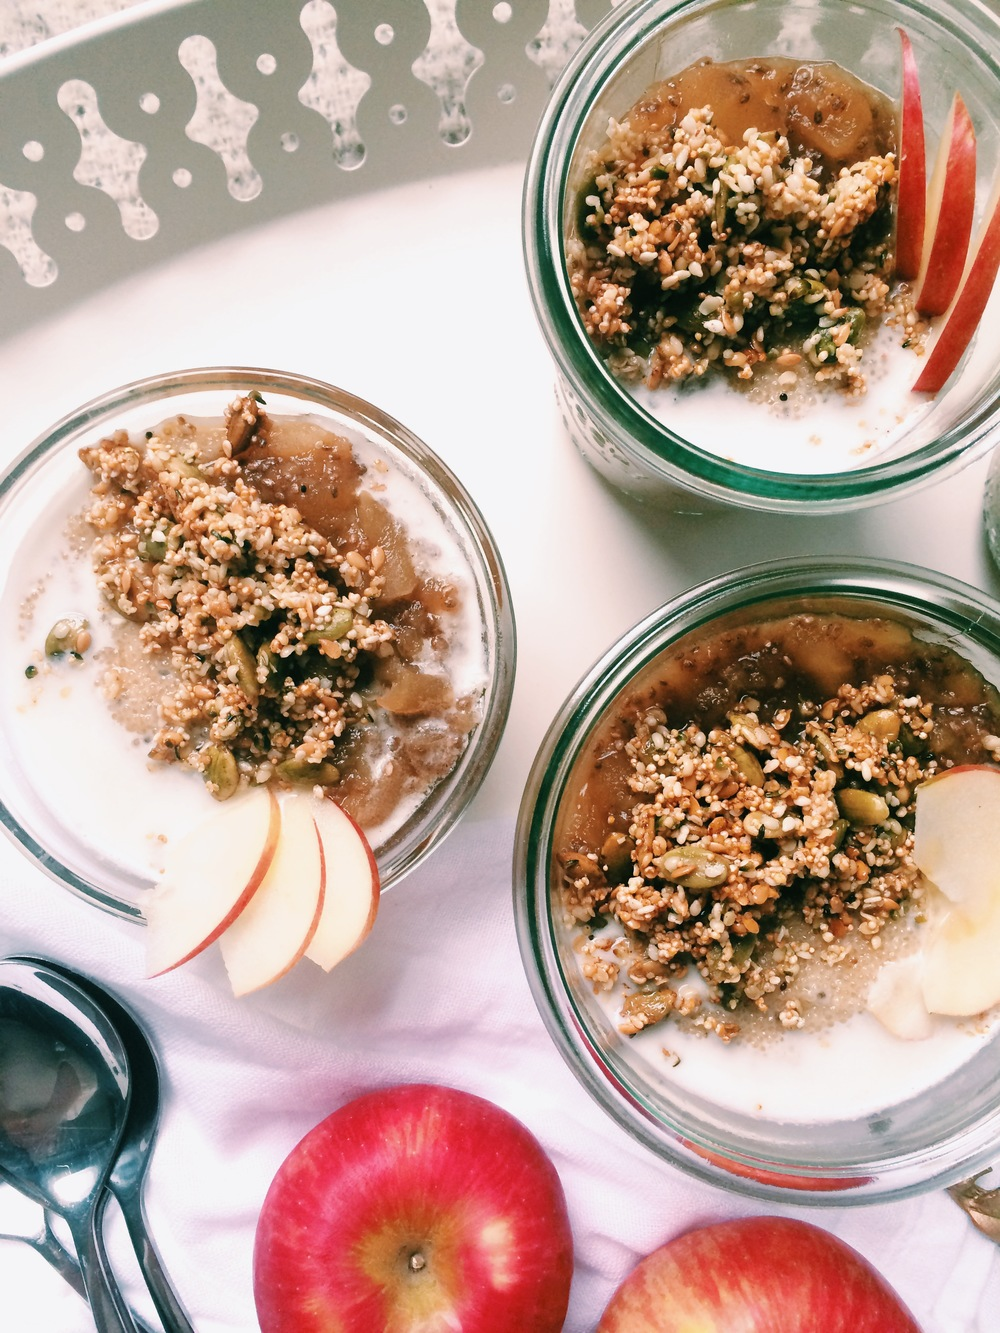 Amaranth Porridge with Spiced Apple & Pear Compote and Crunchy Seed Topping (gluten free, vegan, nut-free) - My Natural Kitchen